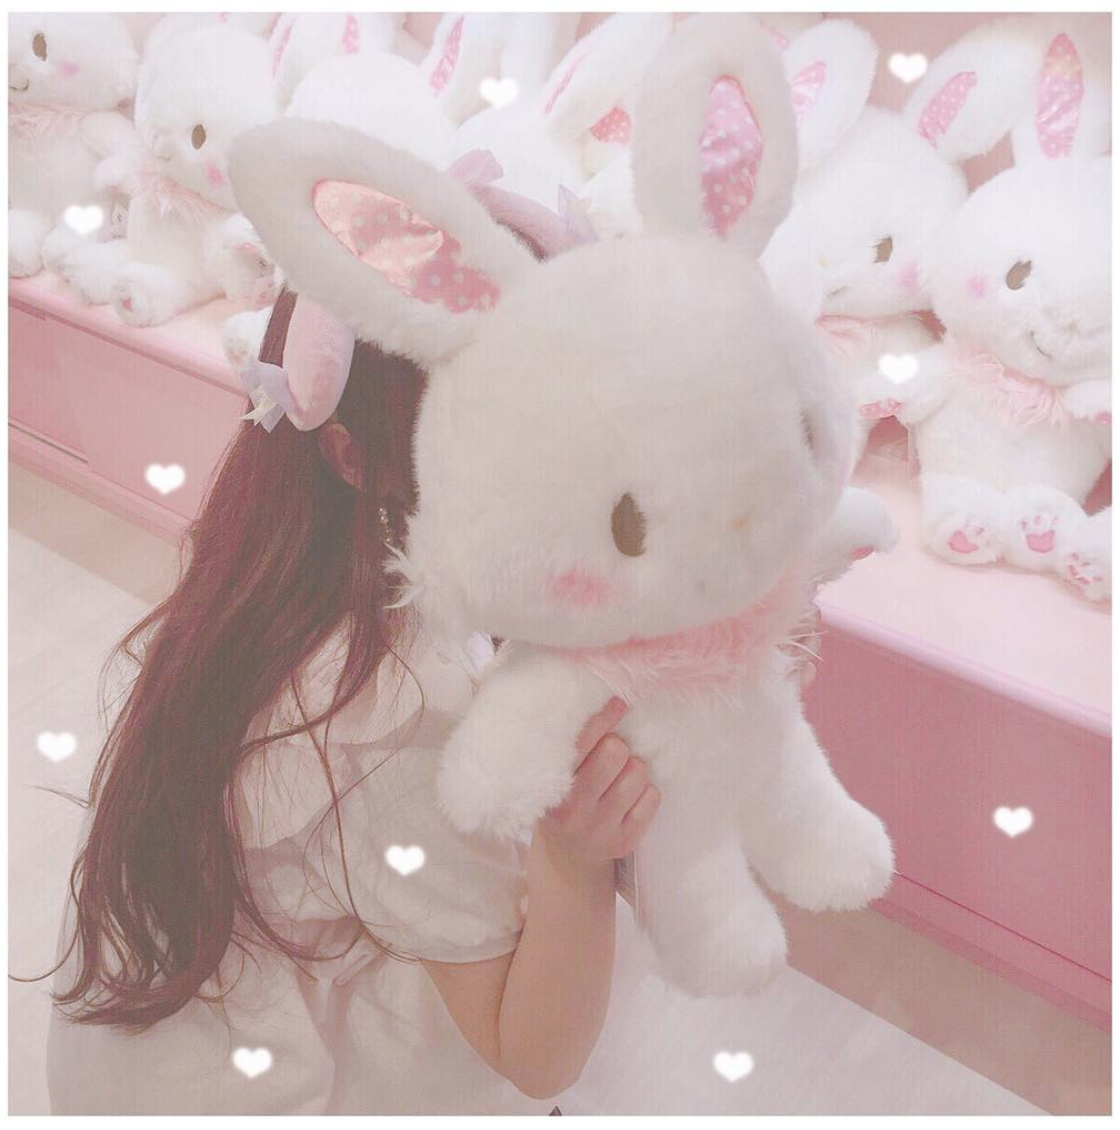 Blippo Kawaii Shop Pastel pink aesthetic